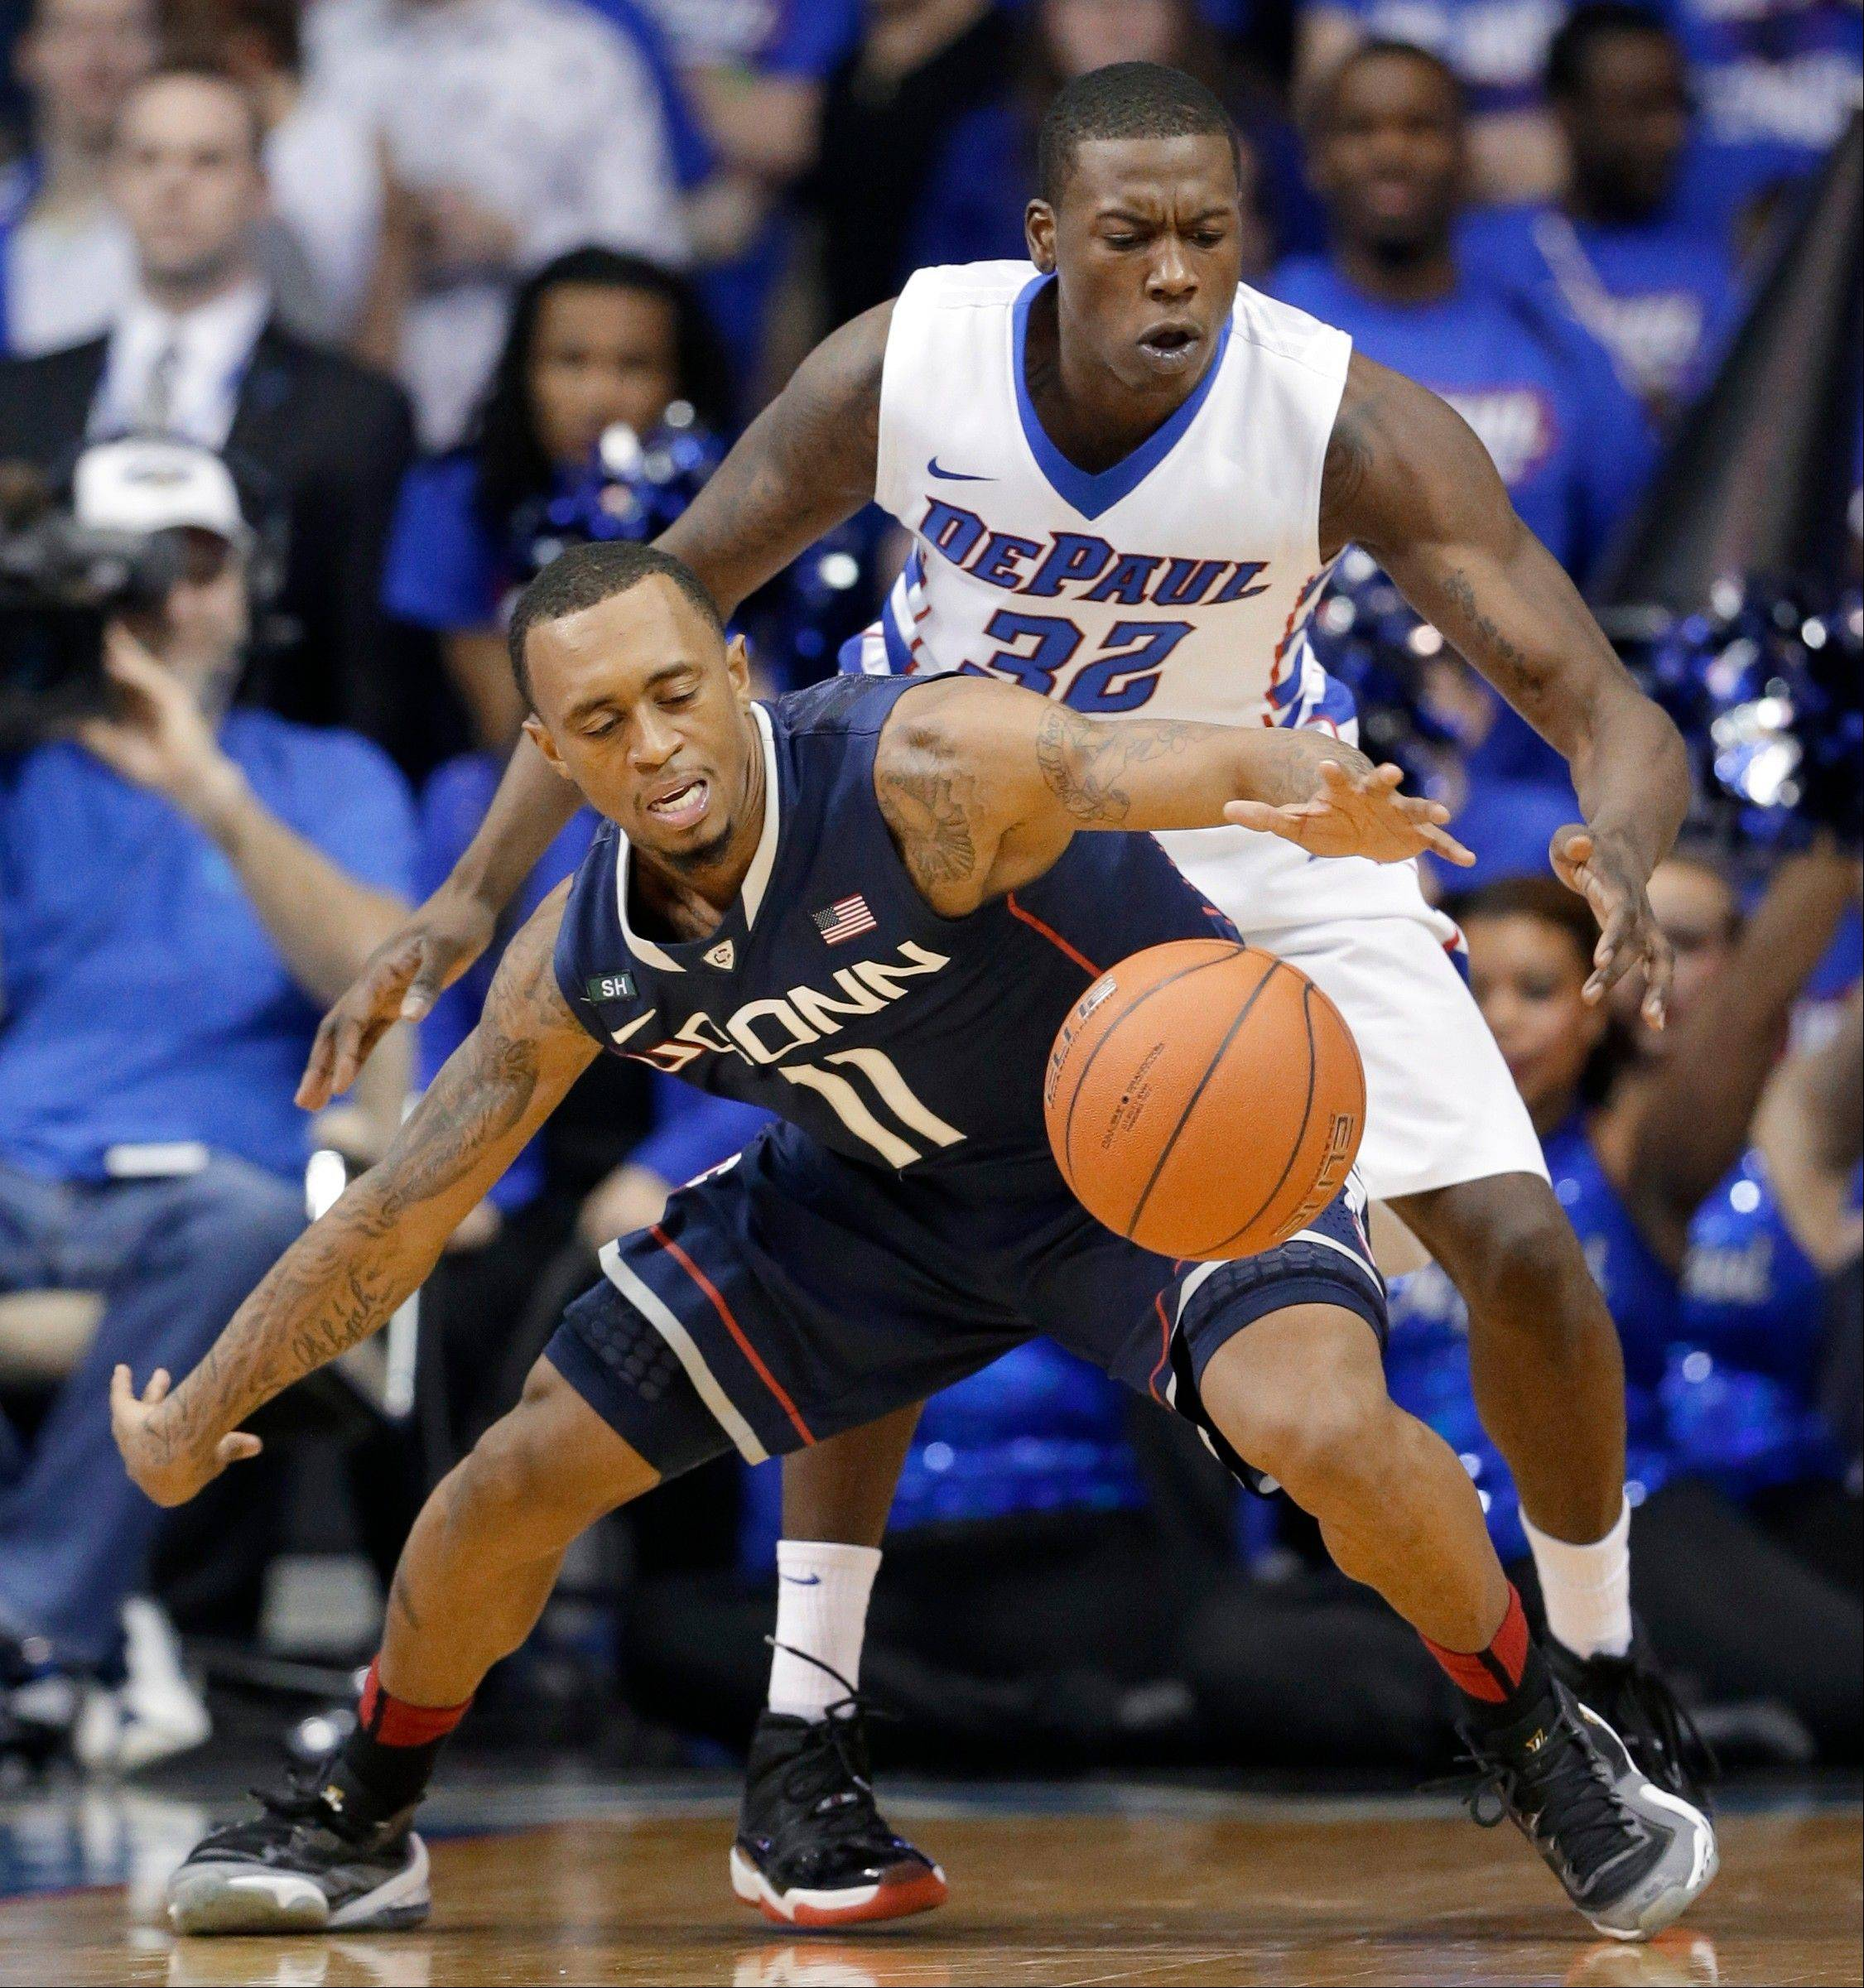 Connecticut guard Ryan Boatright (11) -- who is from Aurora -- controls the ball against DePaul guard Charles McKinney (32) during the game Saturday night in Rosemont. Connecticut won 81-69.